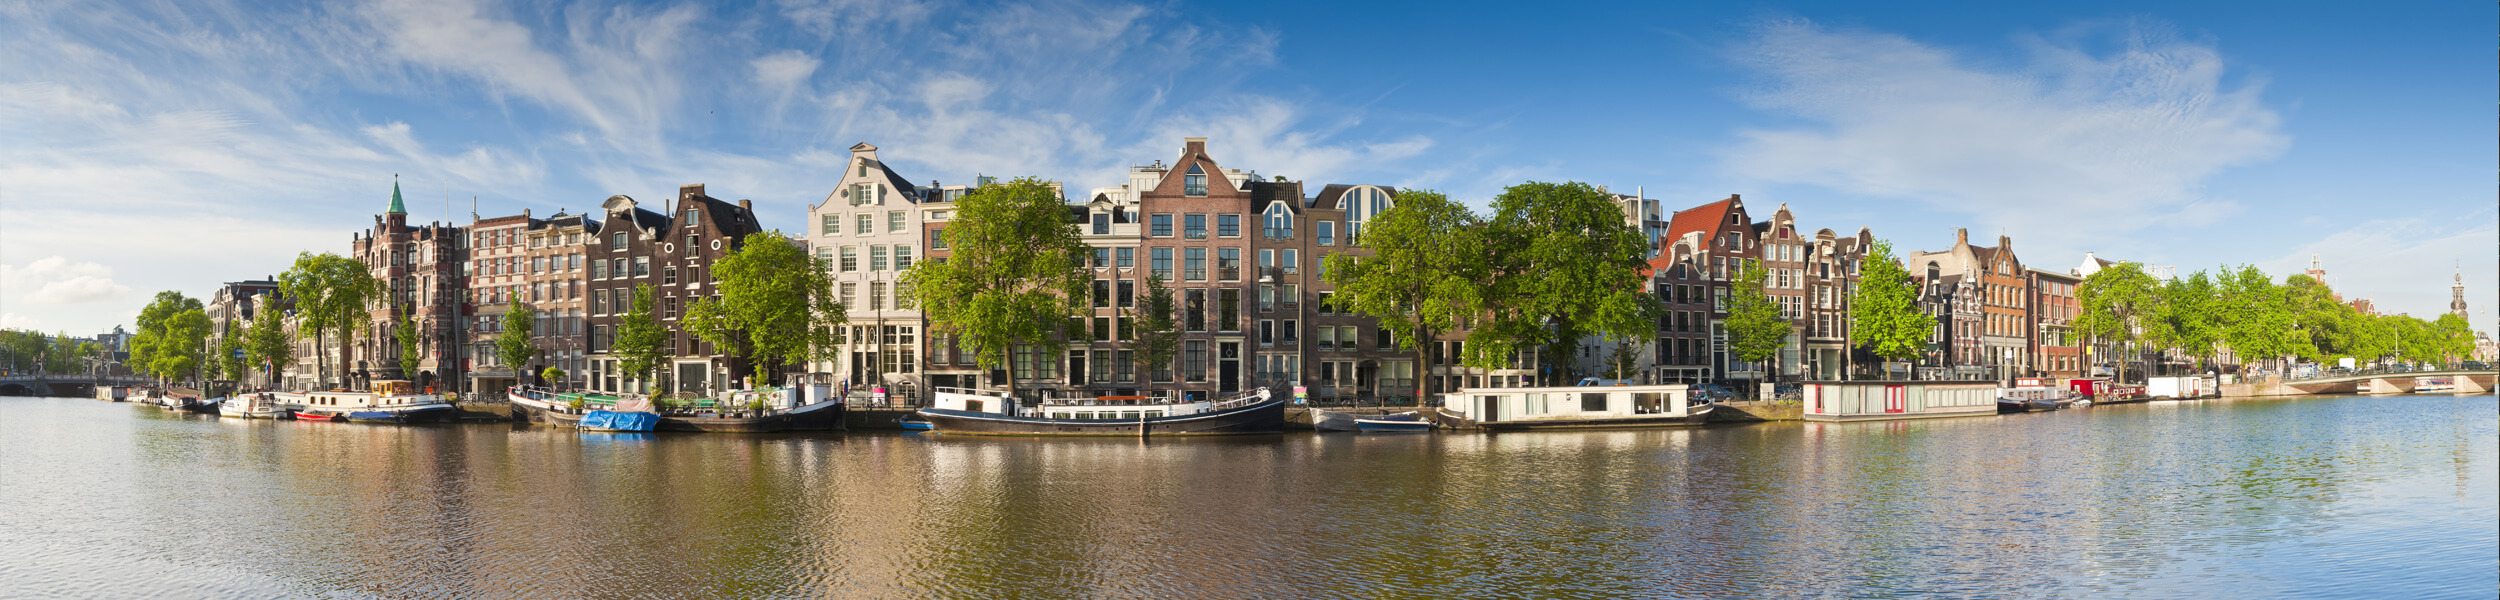 Product Owner Amsterdam, The Netherlands